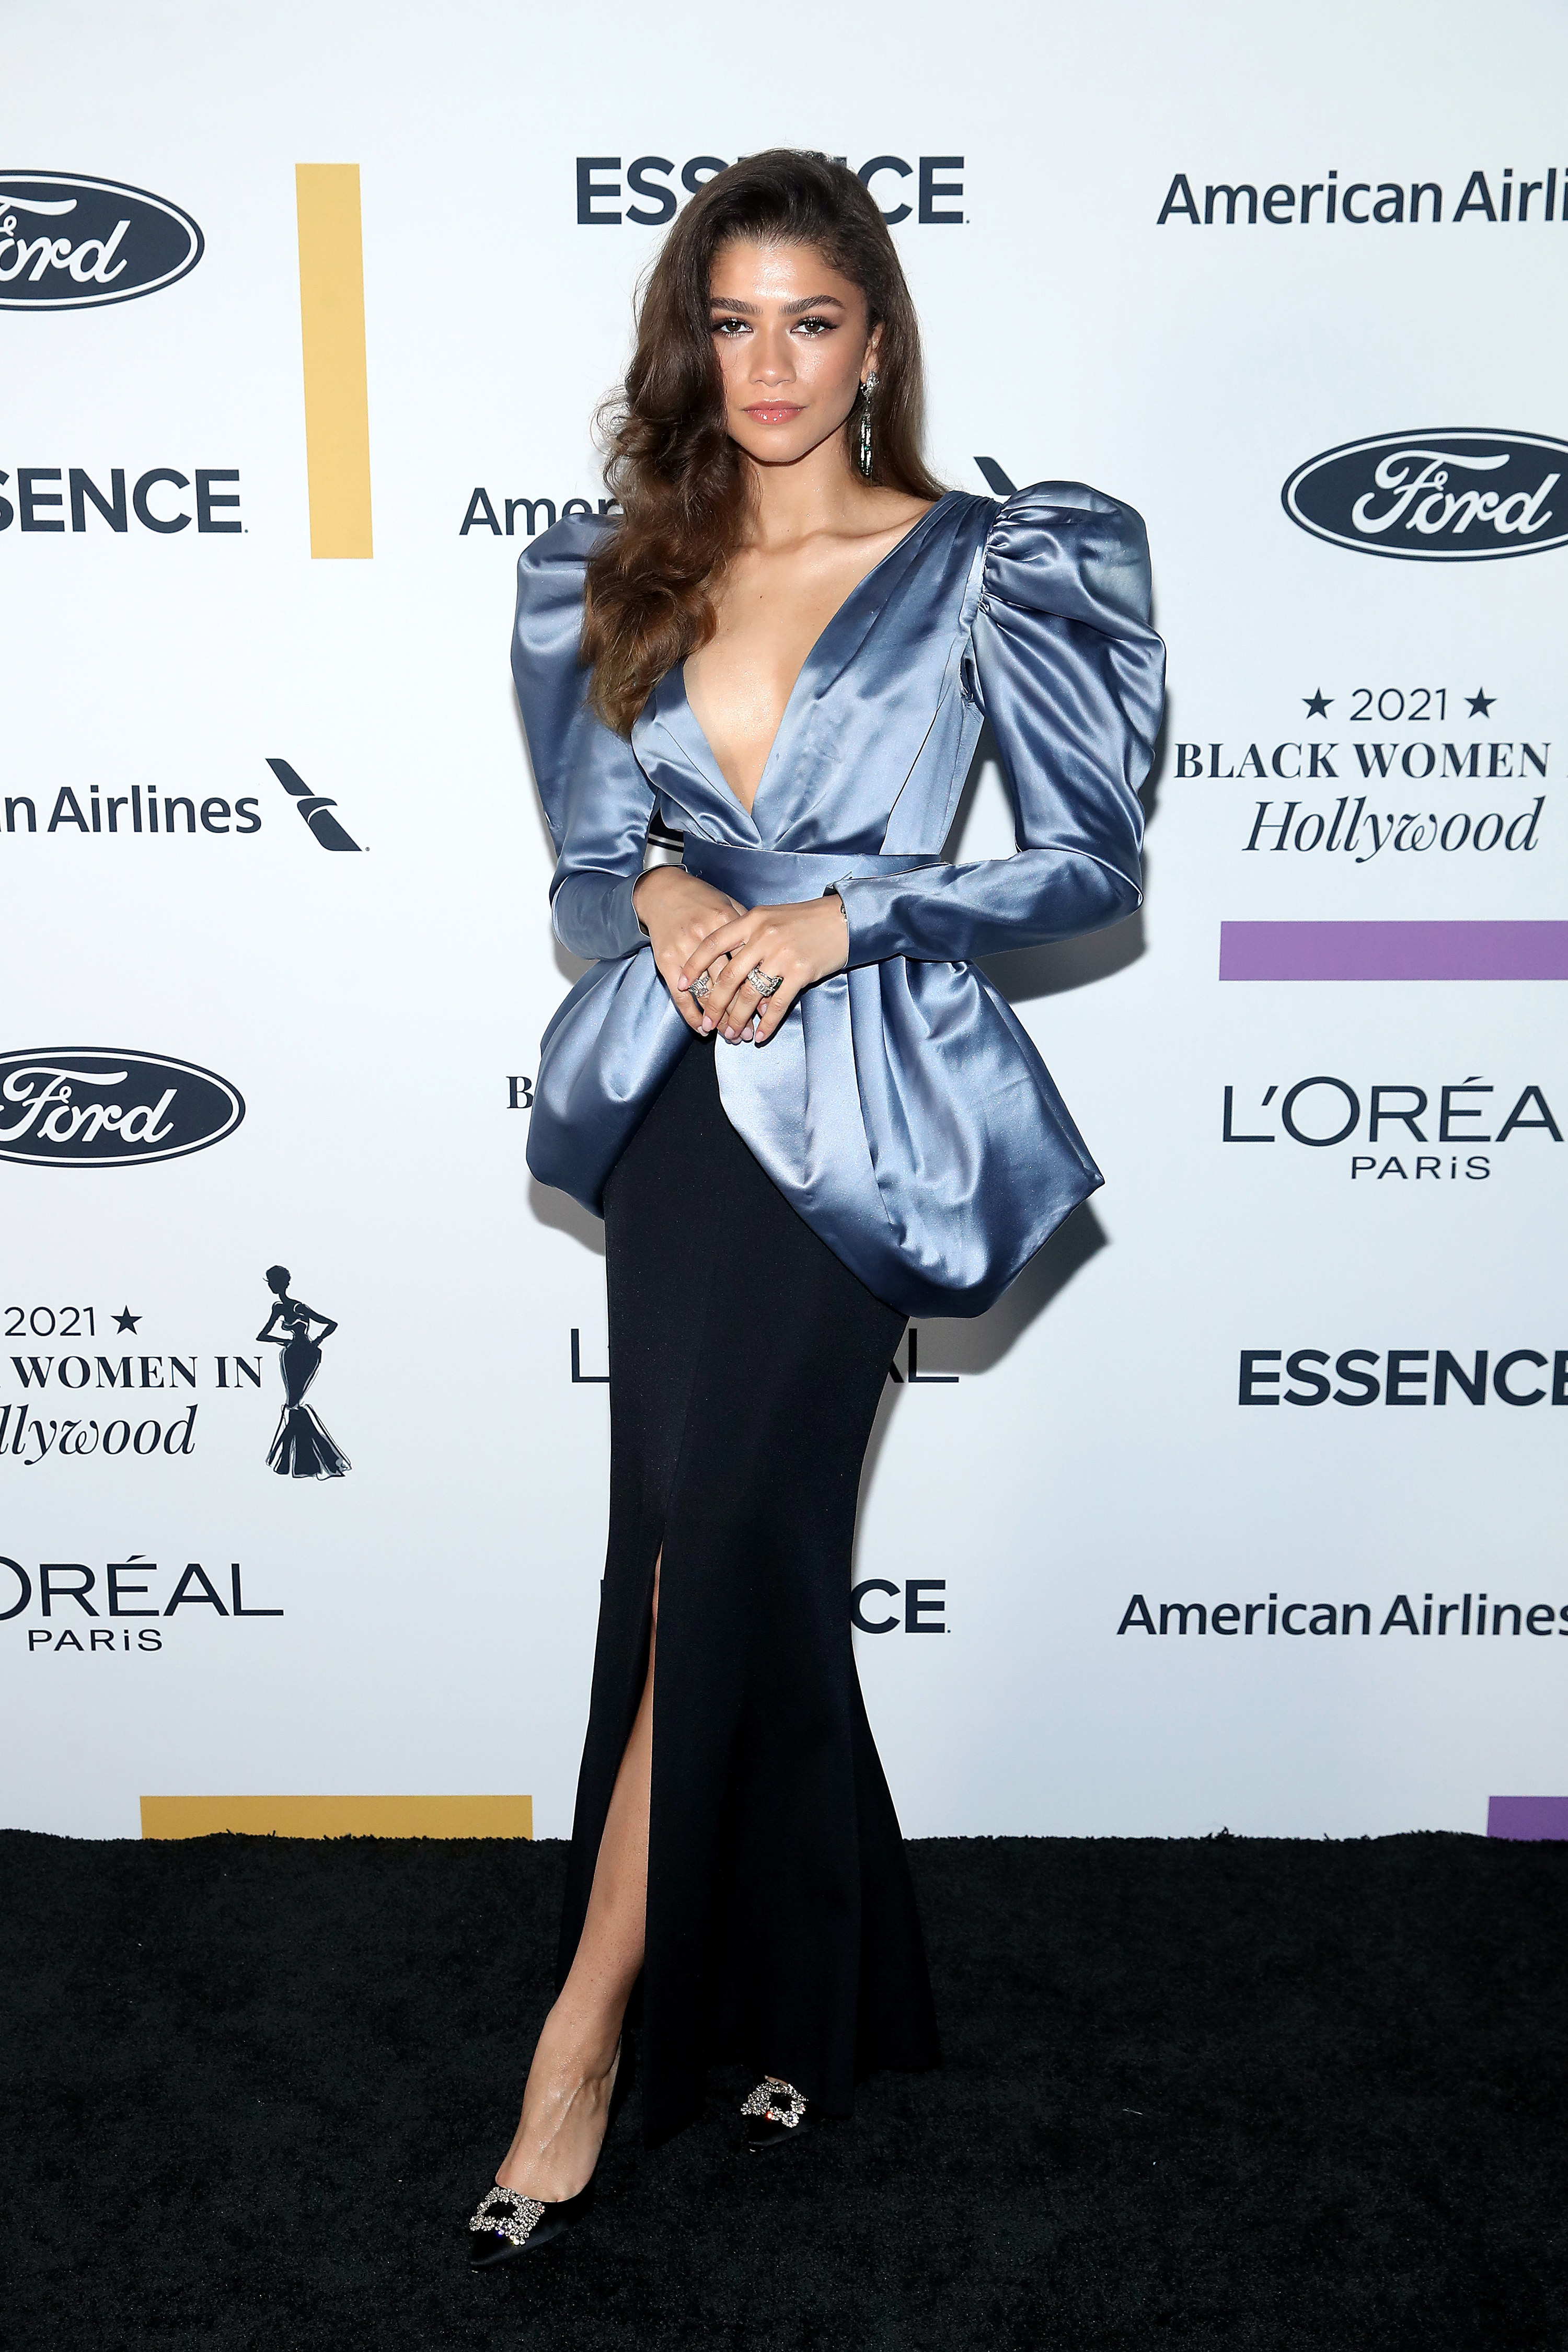 Zendaya arrives and poses on the black carpet for the 2021 ESSENCE Black Women in Hollywood Awards in Los Angeles, California